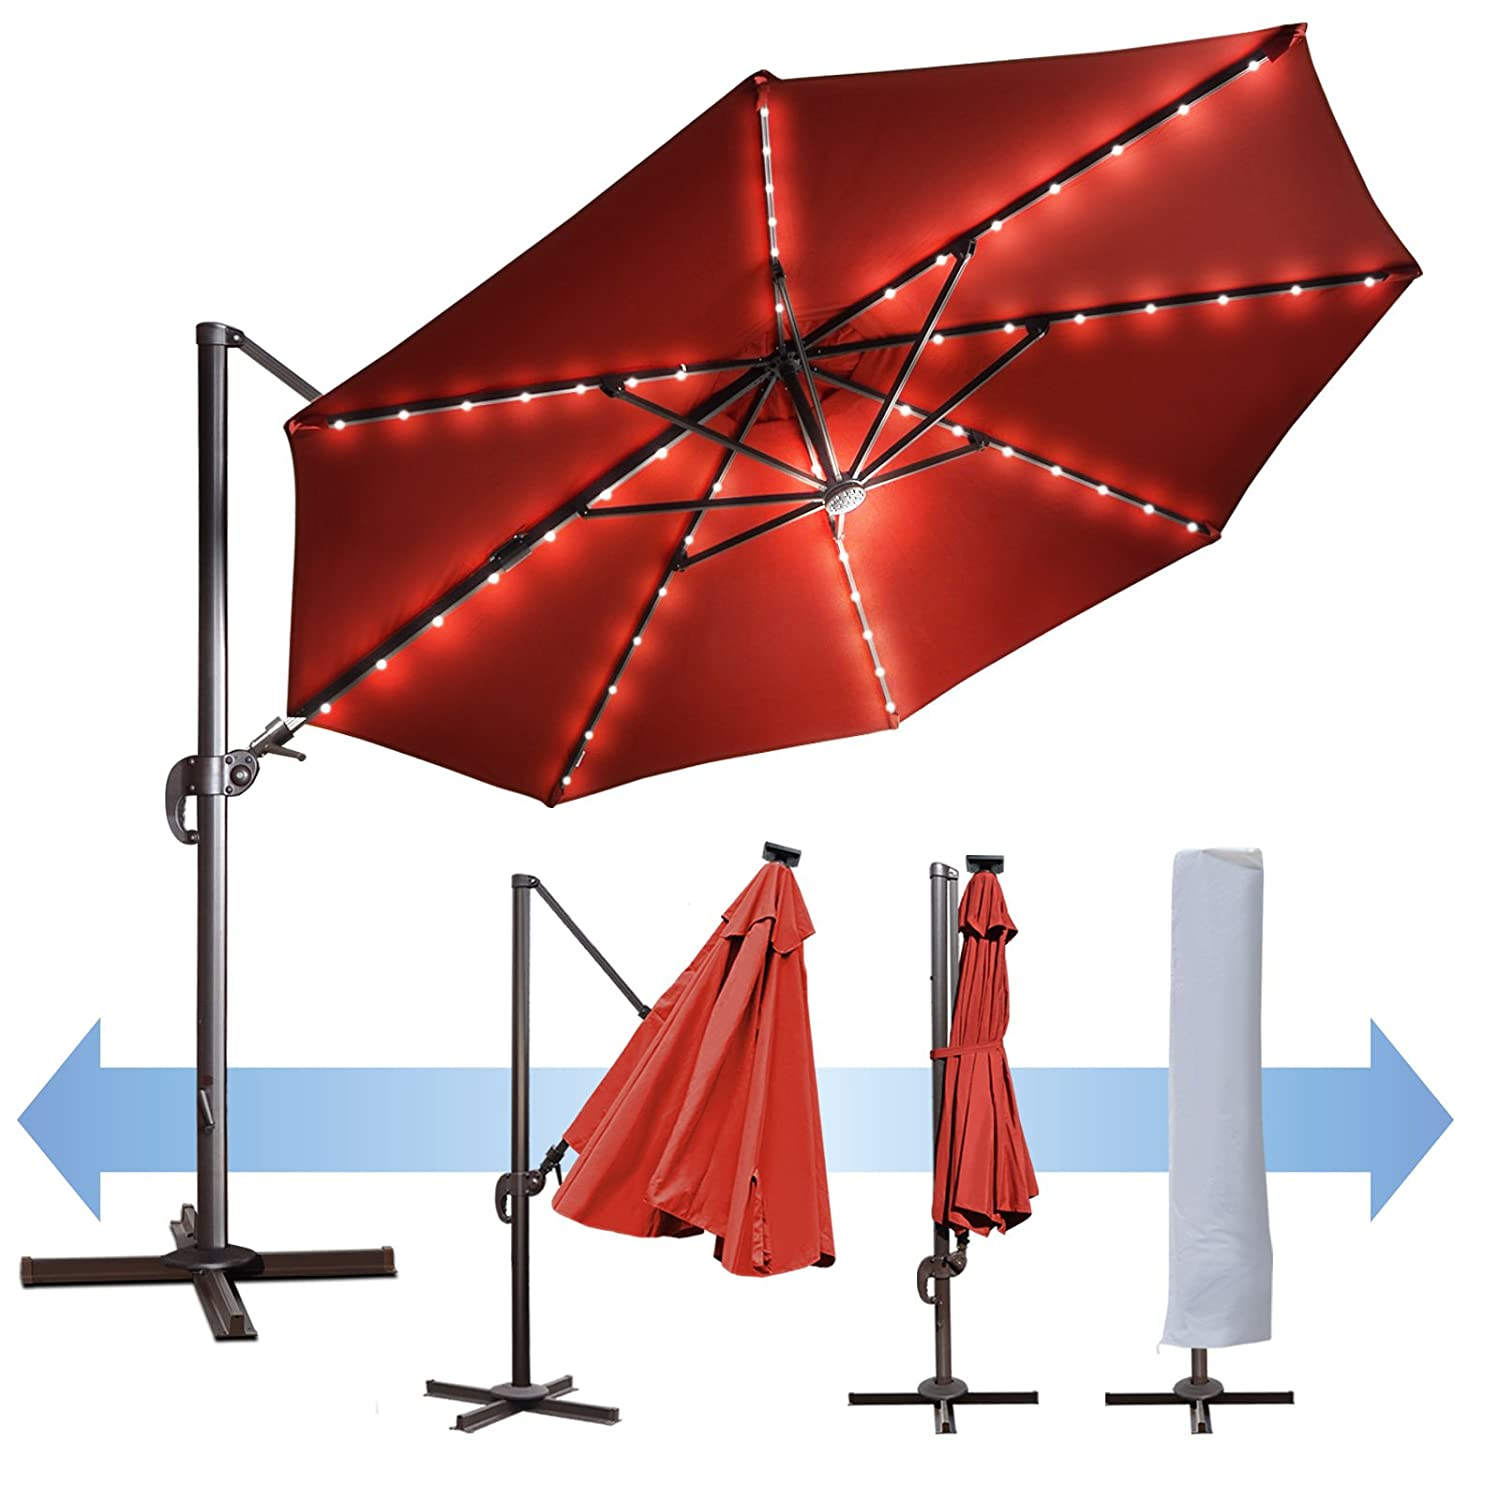 BenefitUSA 11.5' Deluxe Off-Set Hanging Roma Offset Umbrella UV 50+ Tilt & 360 Rotation Patio Heavy Duty Outdoor Sunshade Cantilever Crank With Protect Cover (HENNA) B079MB1YCN